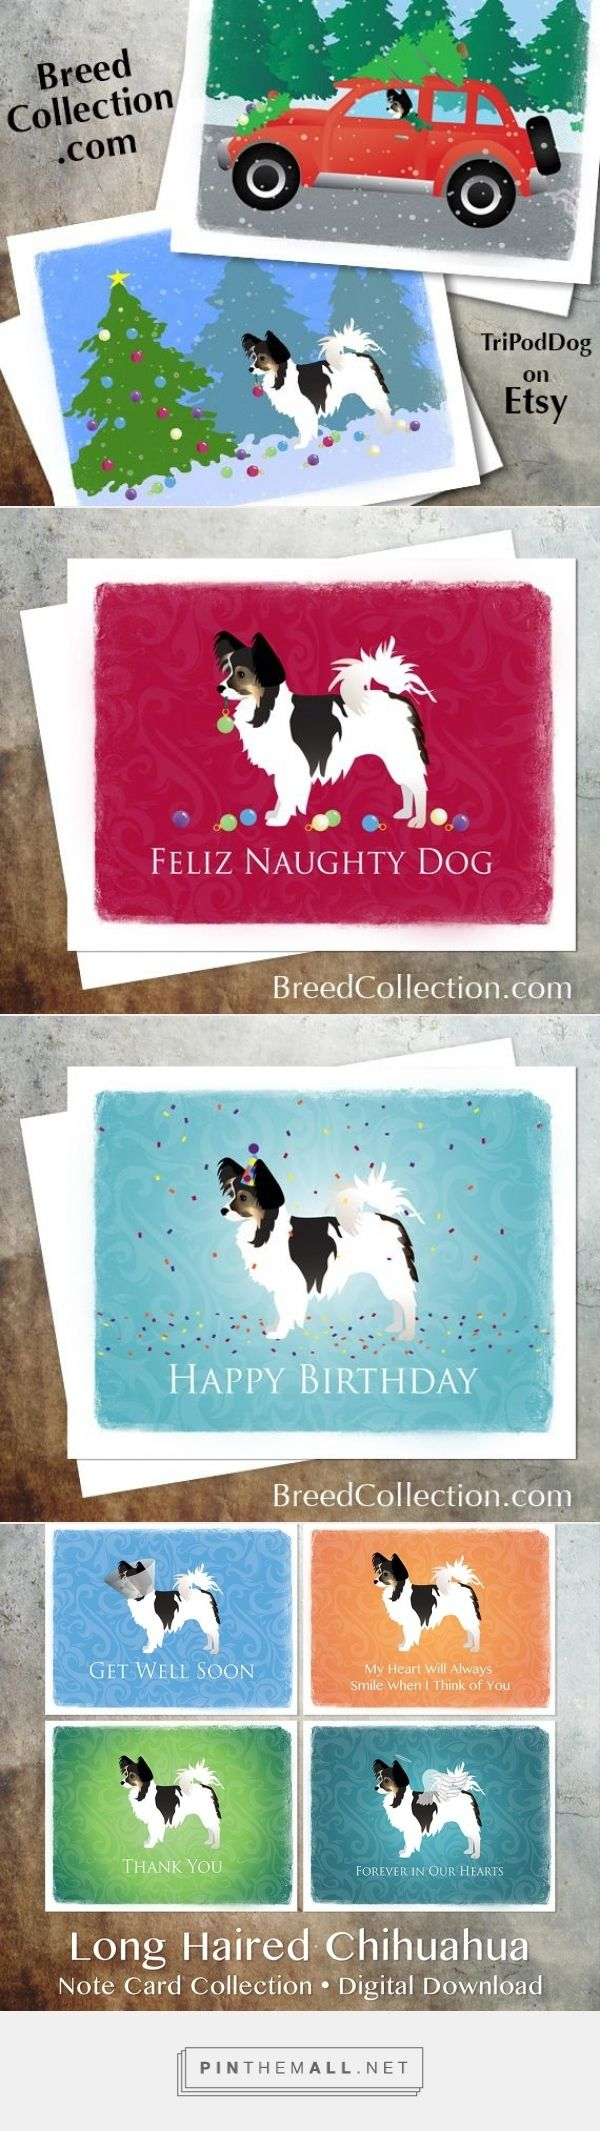 Tri-color Long-haired Chihuahua or Papillon Dog Christmas Cards from the Breed Collection - Digital Download Printable